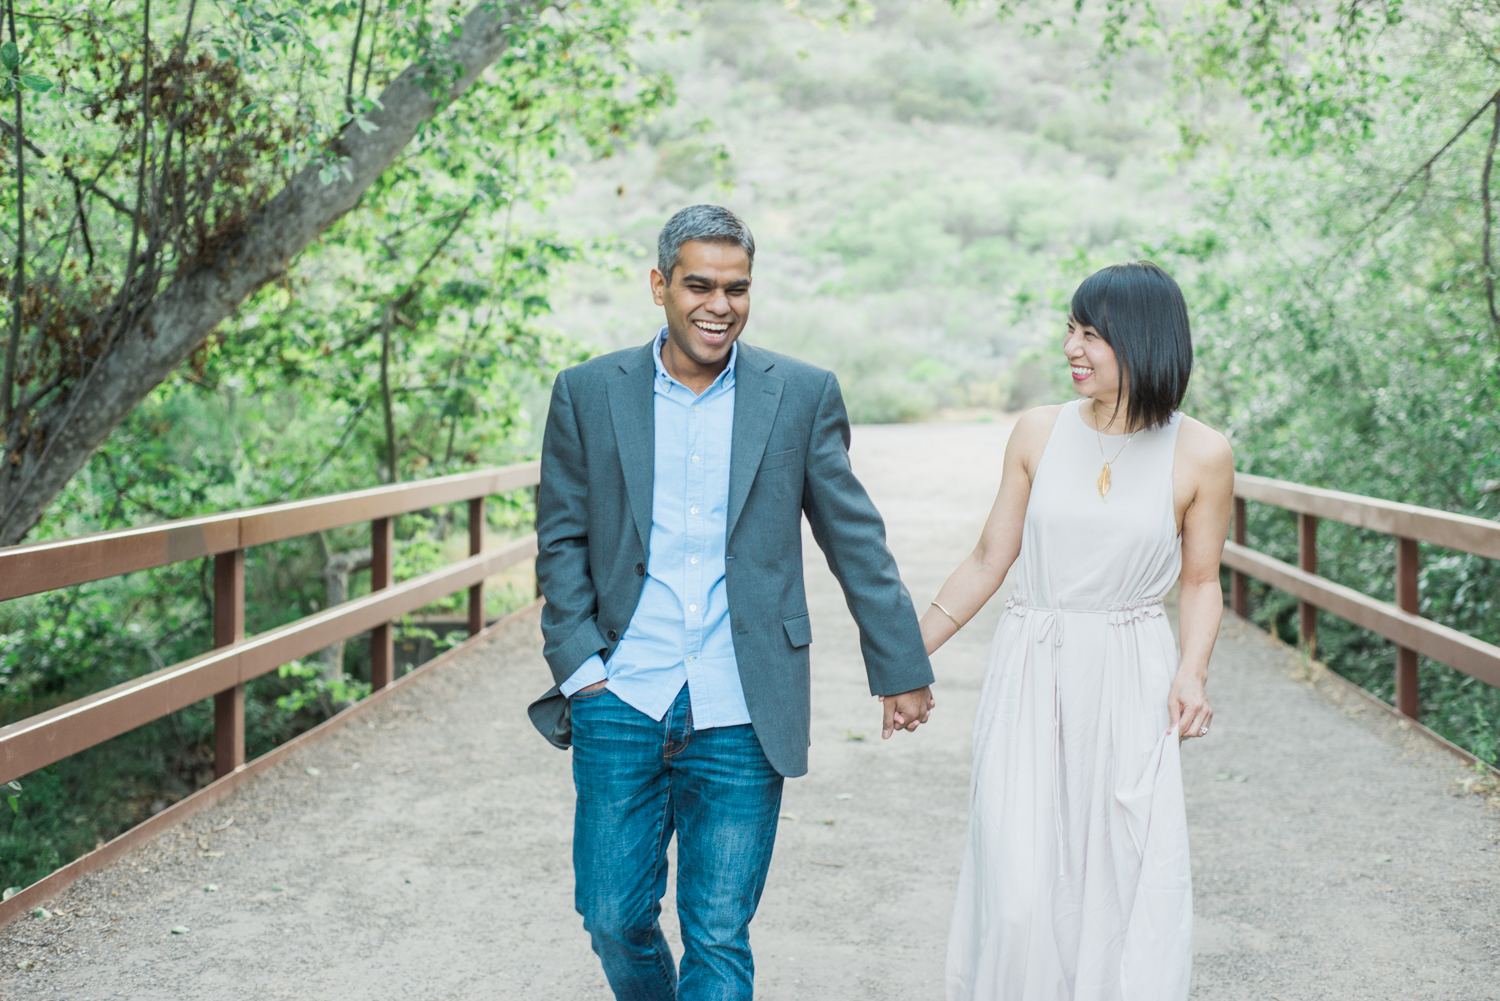 tina&sahil_solstice_canyon_engagement_session_photography_los_angeles_wedding_photographer-10.jpg